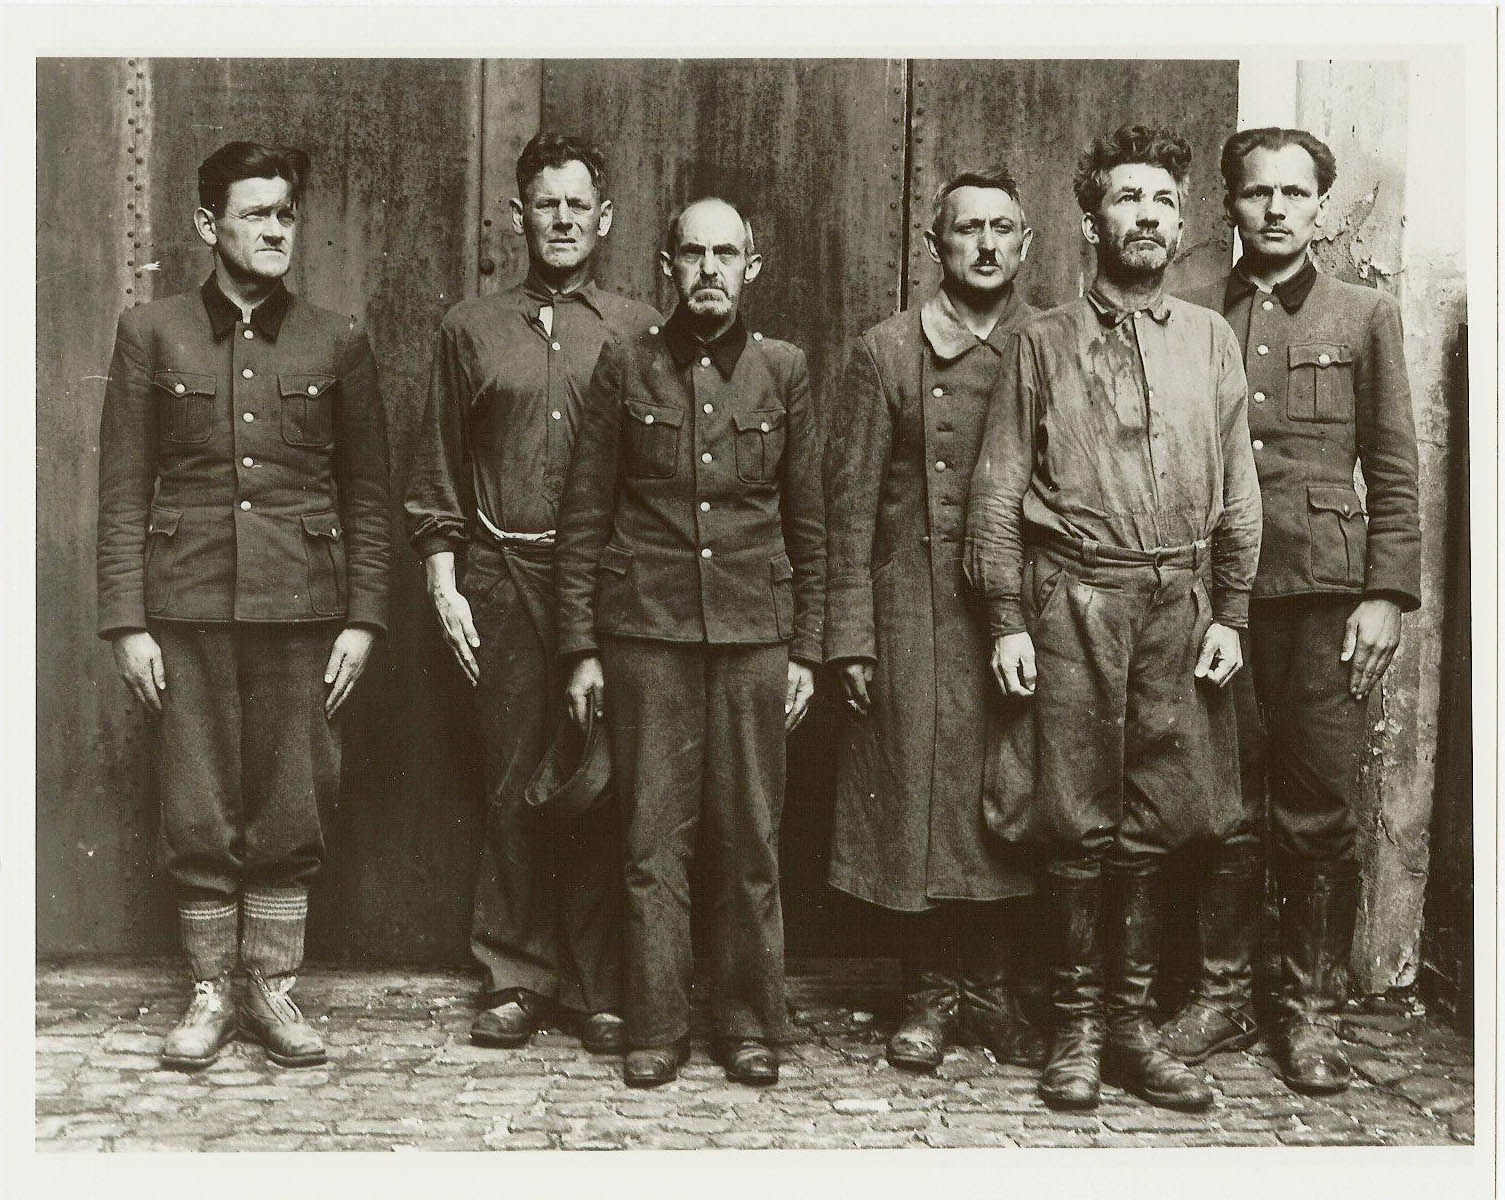 Captured SS guards at Bergen-Belsen concentration camp May 1945. Franz Hössler far left. May 1945 Public Records Office London